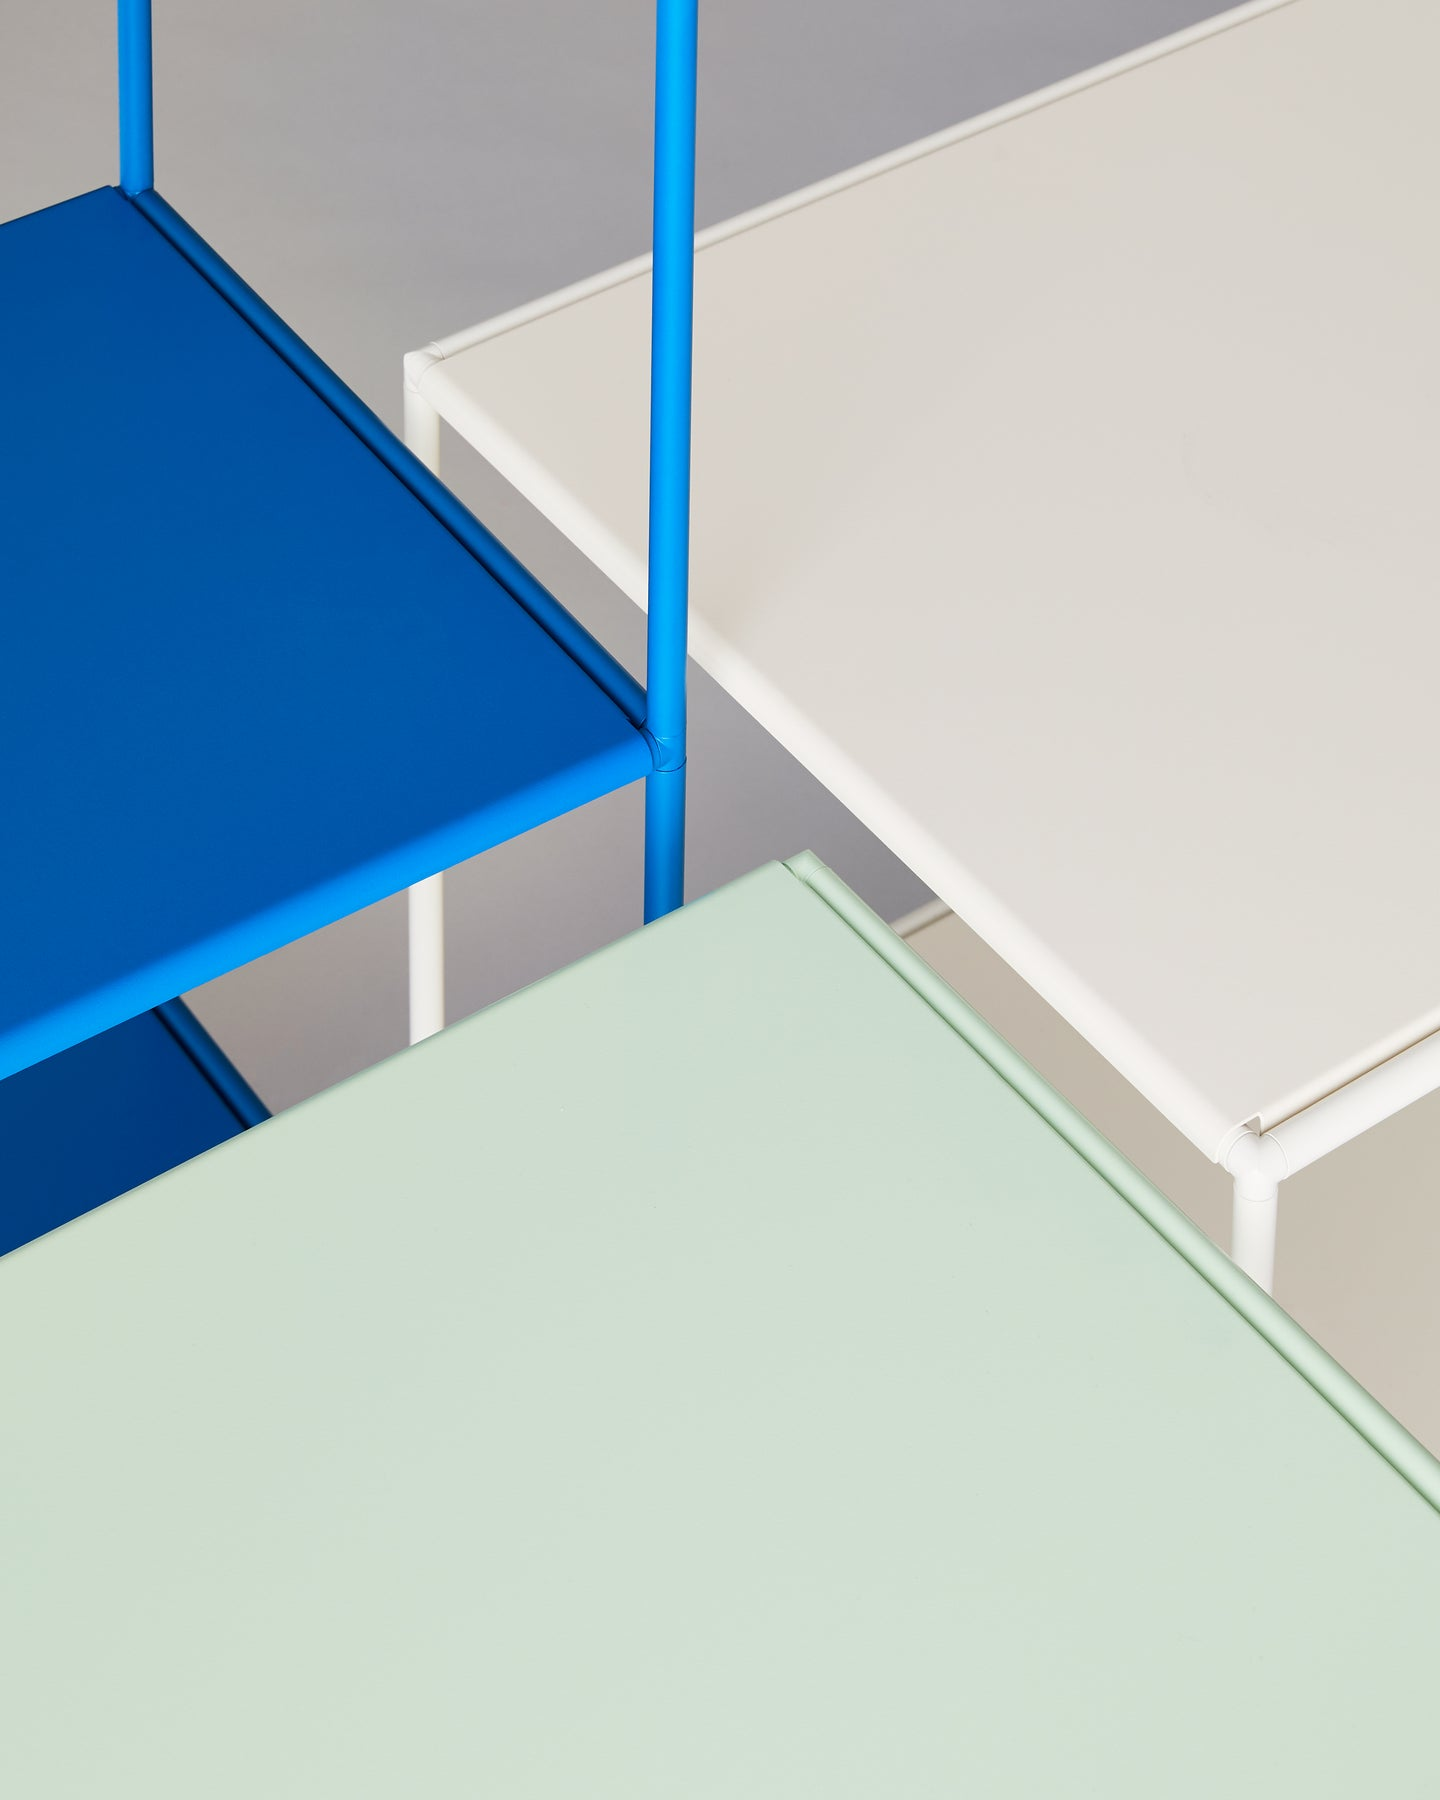 Stille Furniture abstract composition with Bone, Mint and Cobalt colors featured